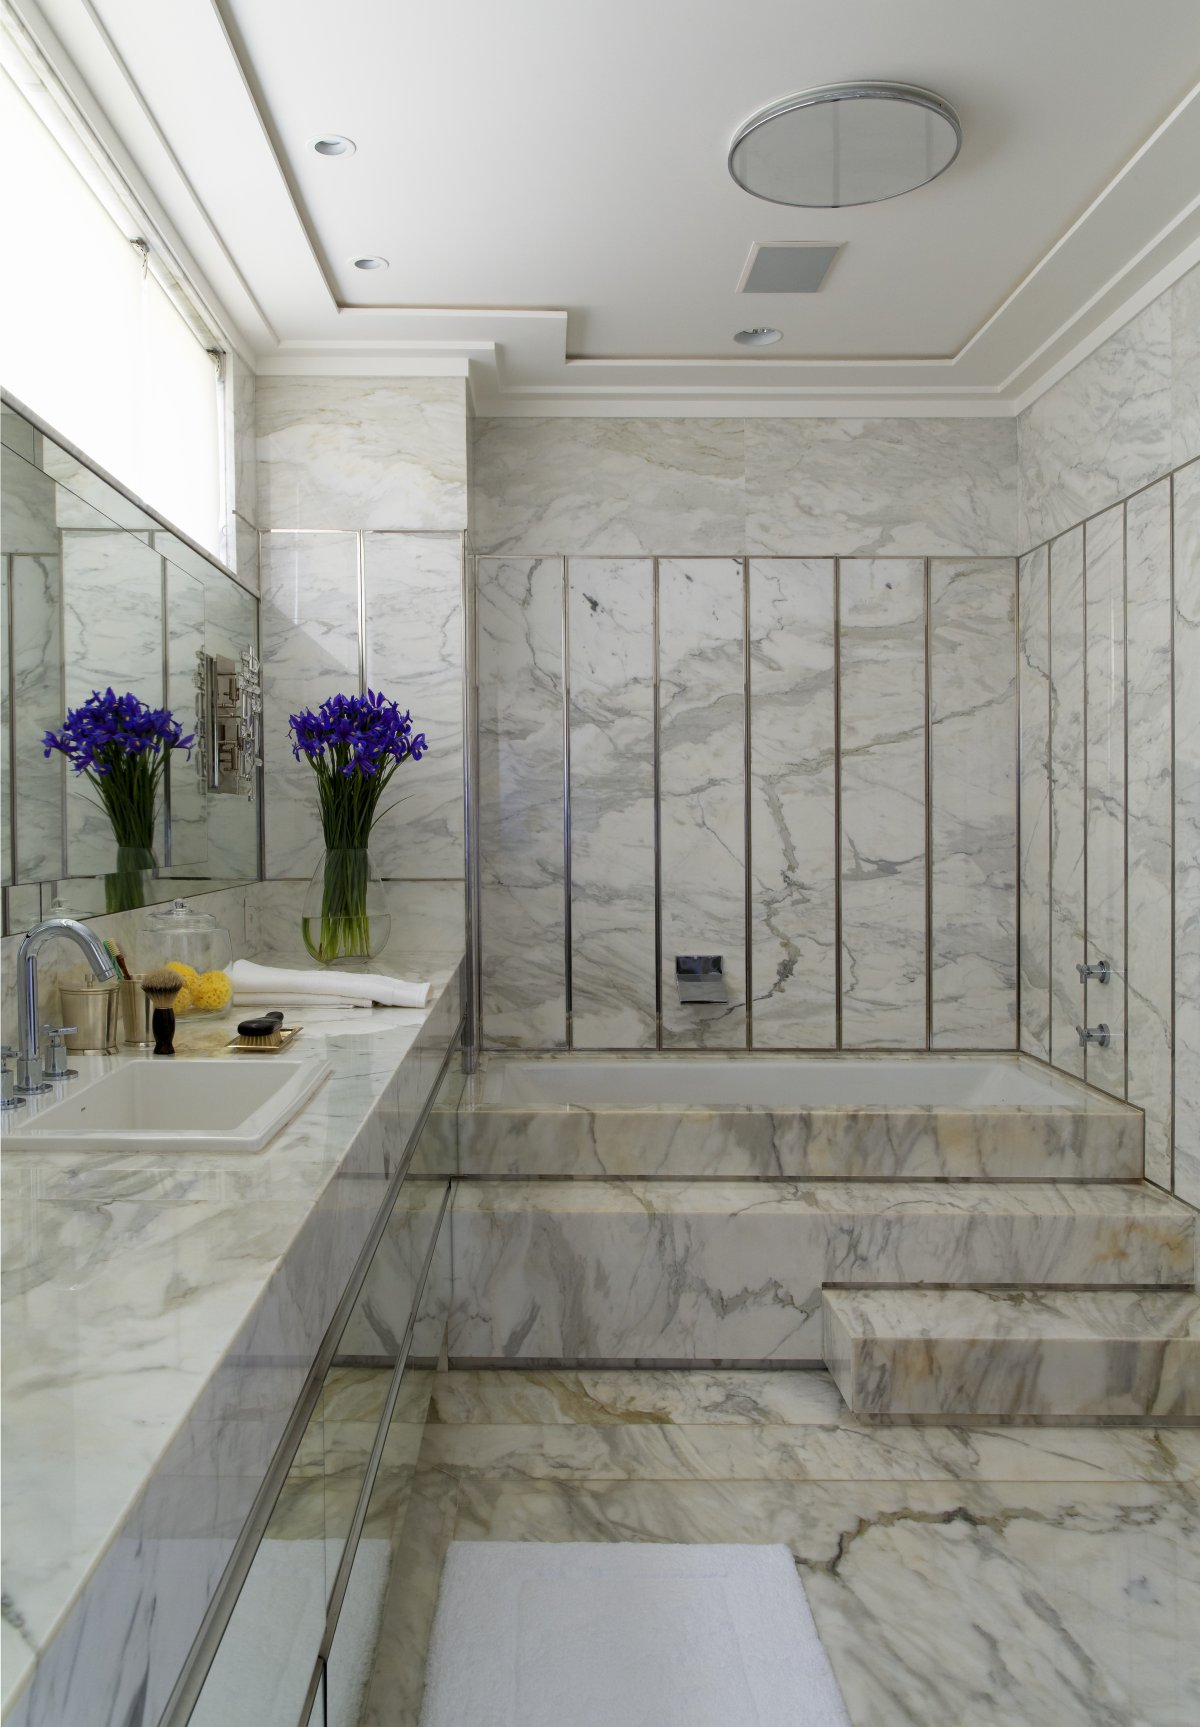 30 cool ideas and pictures custom shower tile designs on Bathroom Tile Pattern Design  id=13675